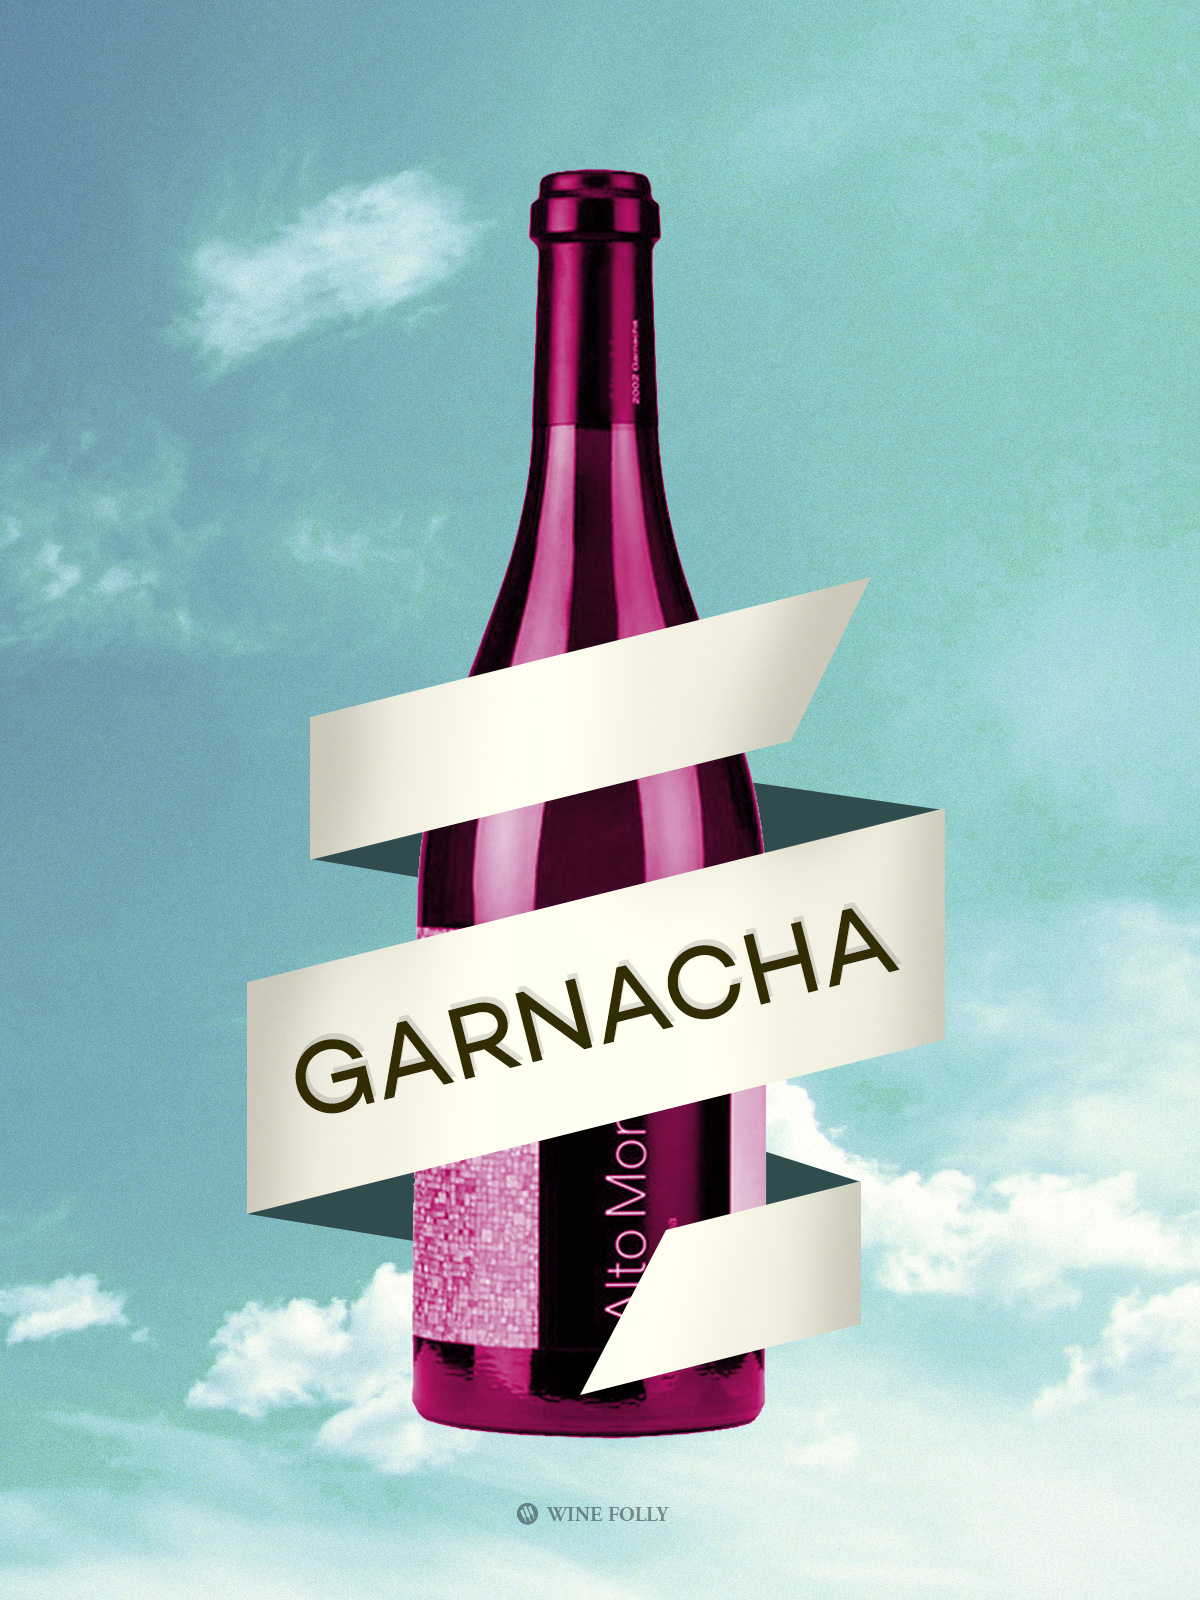 Garnacha illustration by Wine Folly